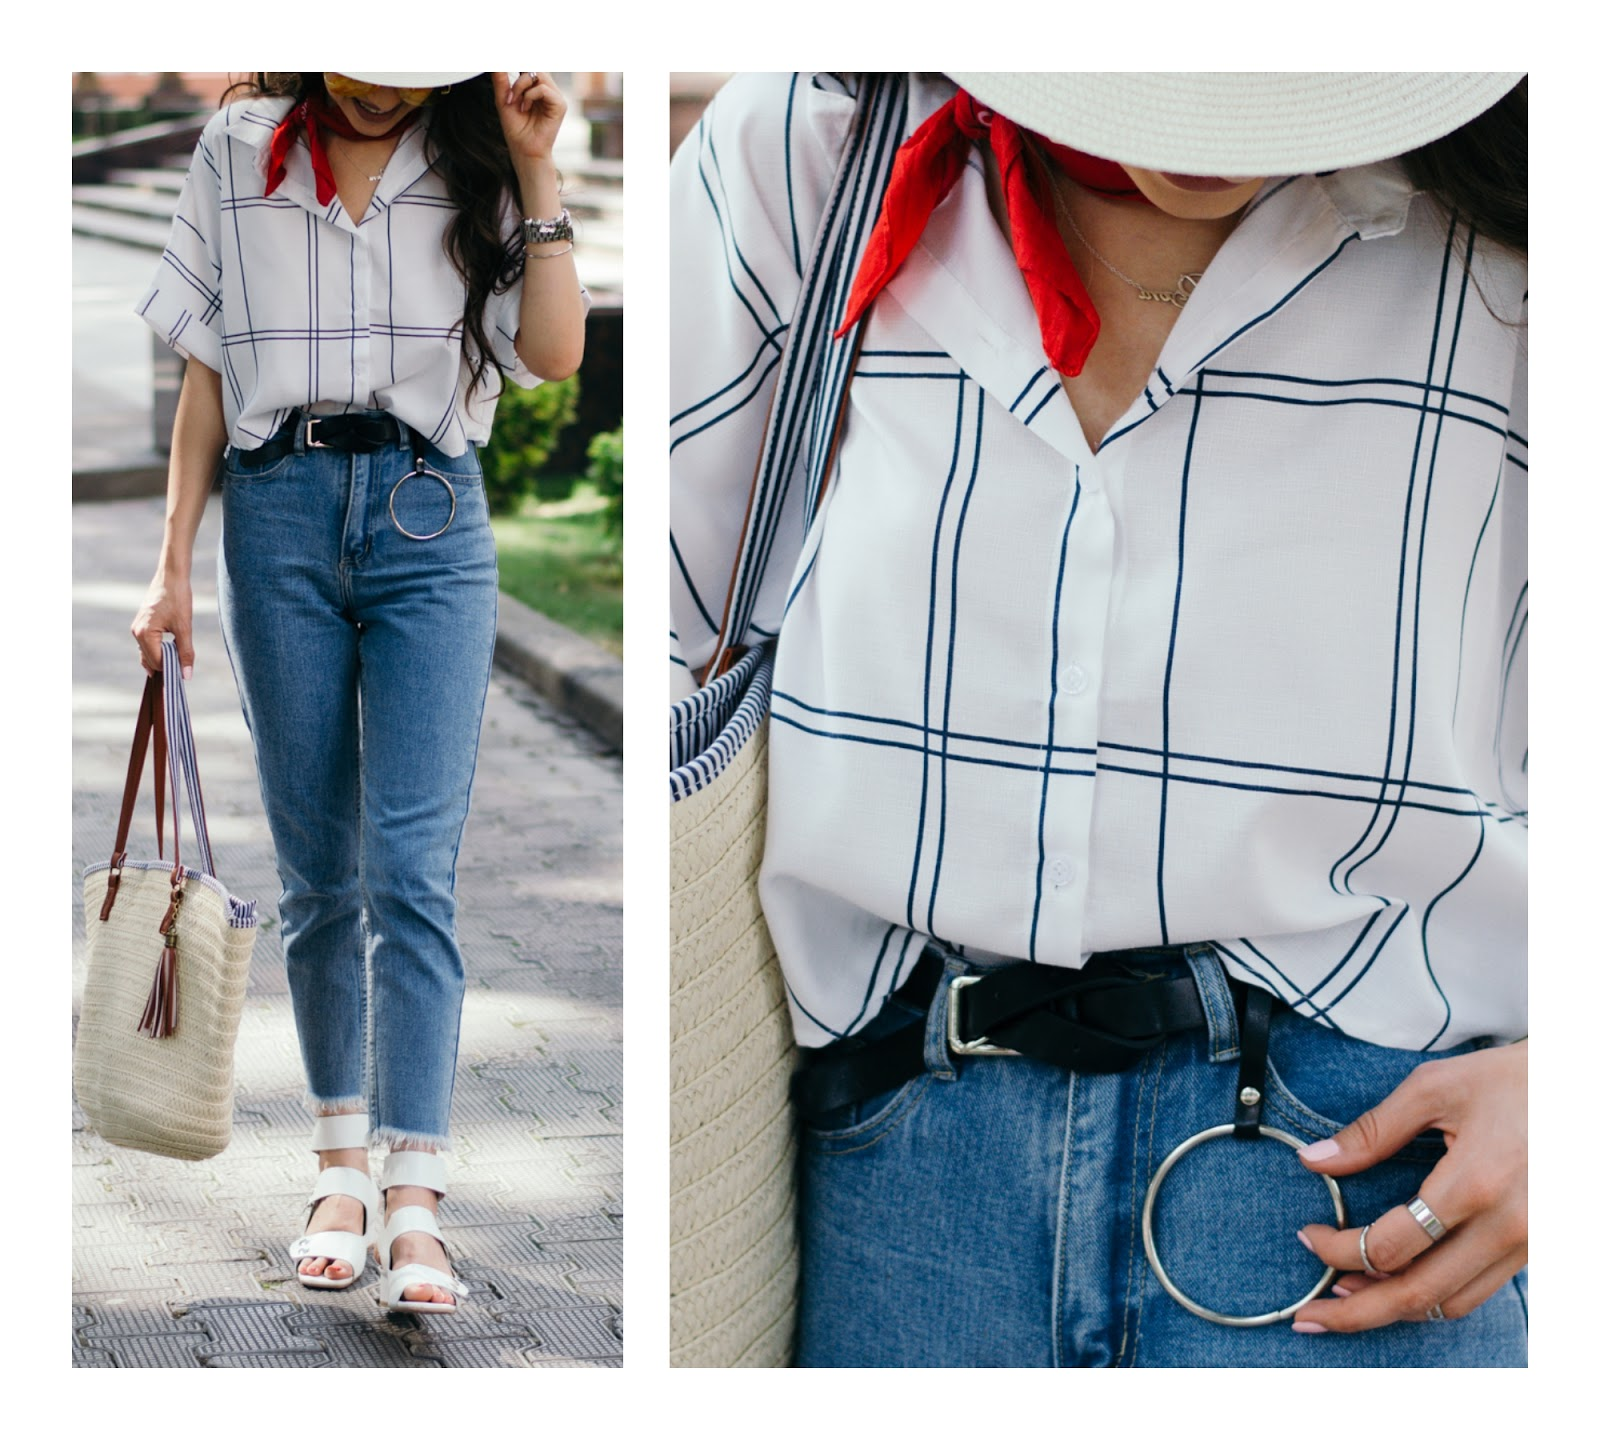 fashion blogger diyorasnotes diyora beta style casual outfit mom jeans shirt straw hat straw bag red bandana asos